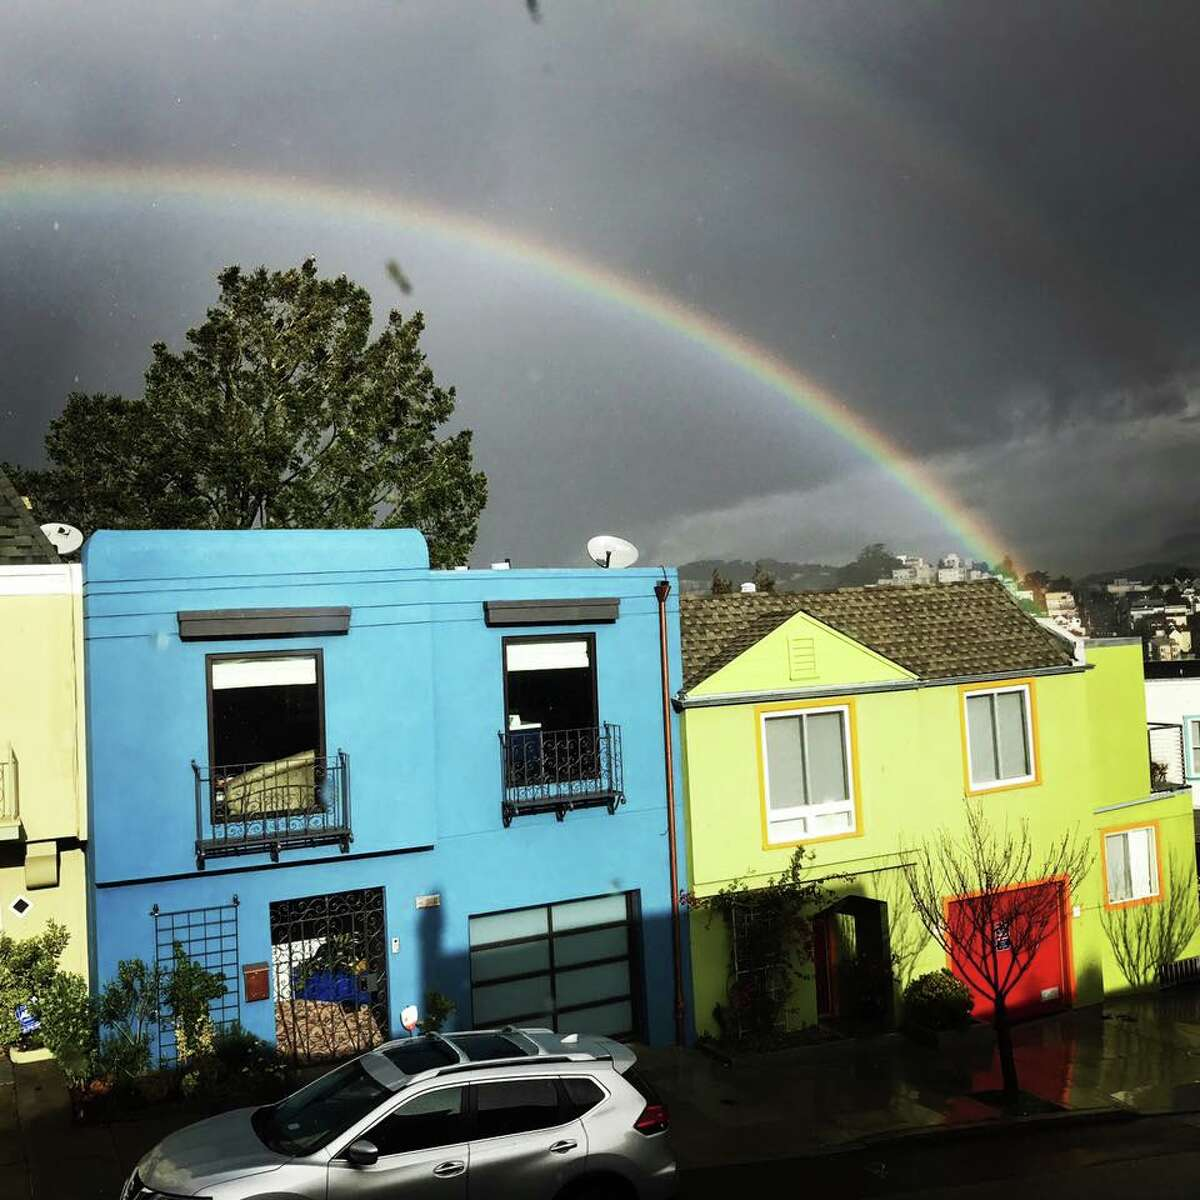 Rainbow appeared outside a San Francisco resident's window on a dreary Monday.